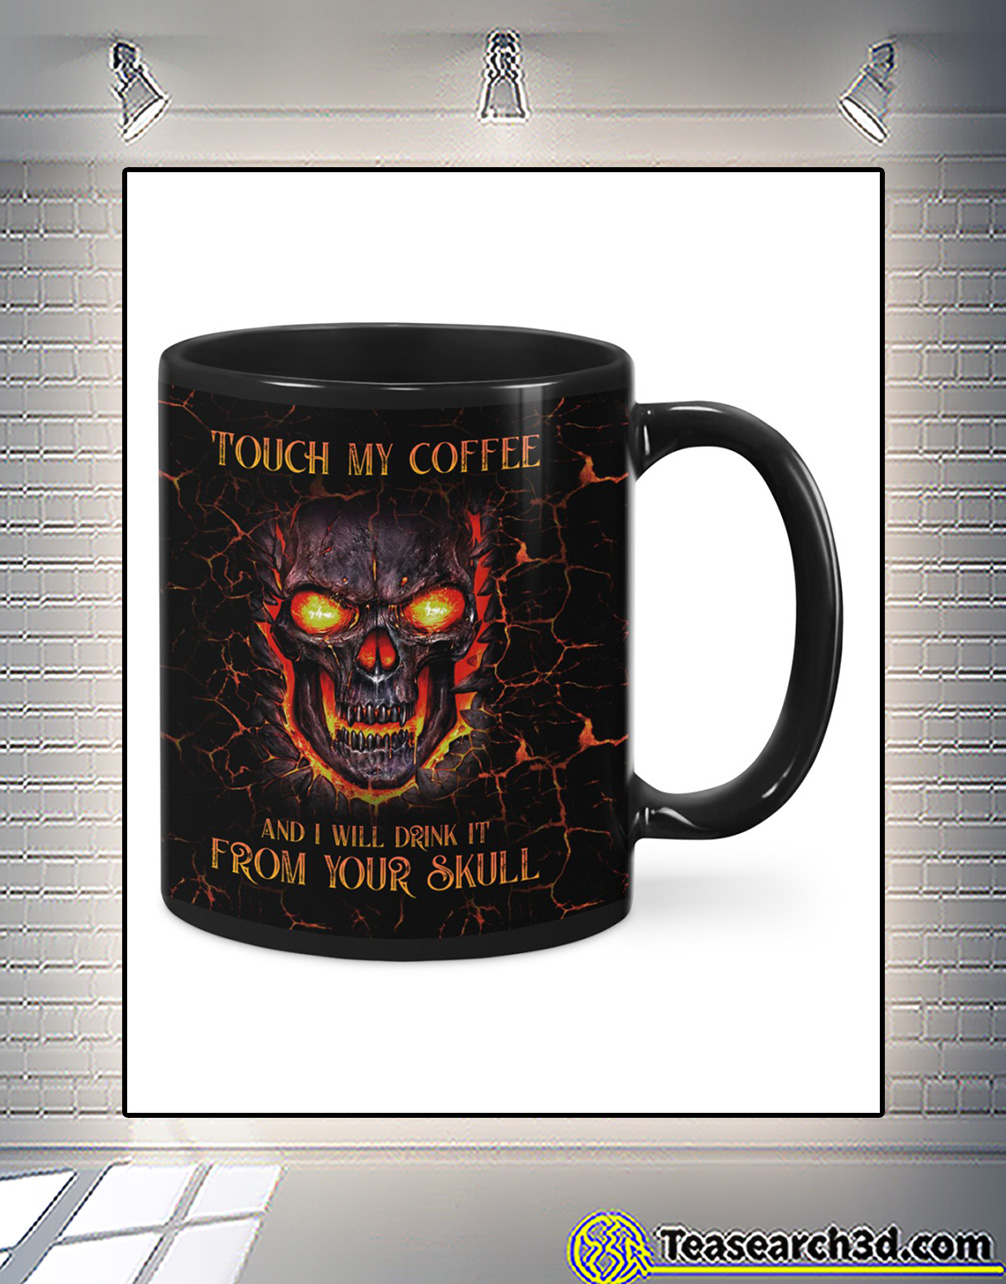 Touch my coffee and I will drink it from your skull mug 2